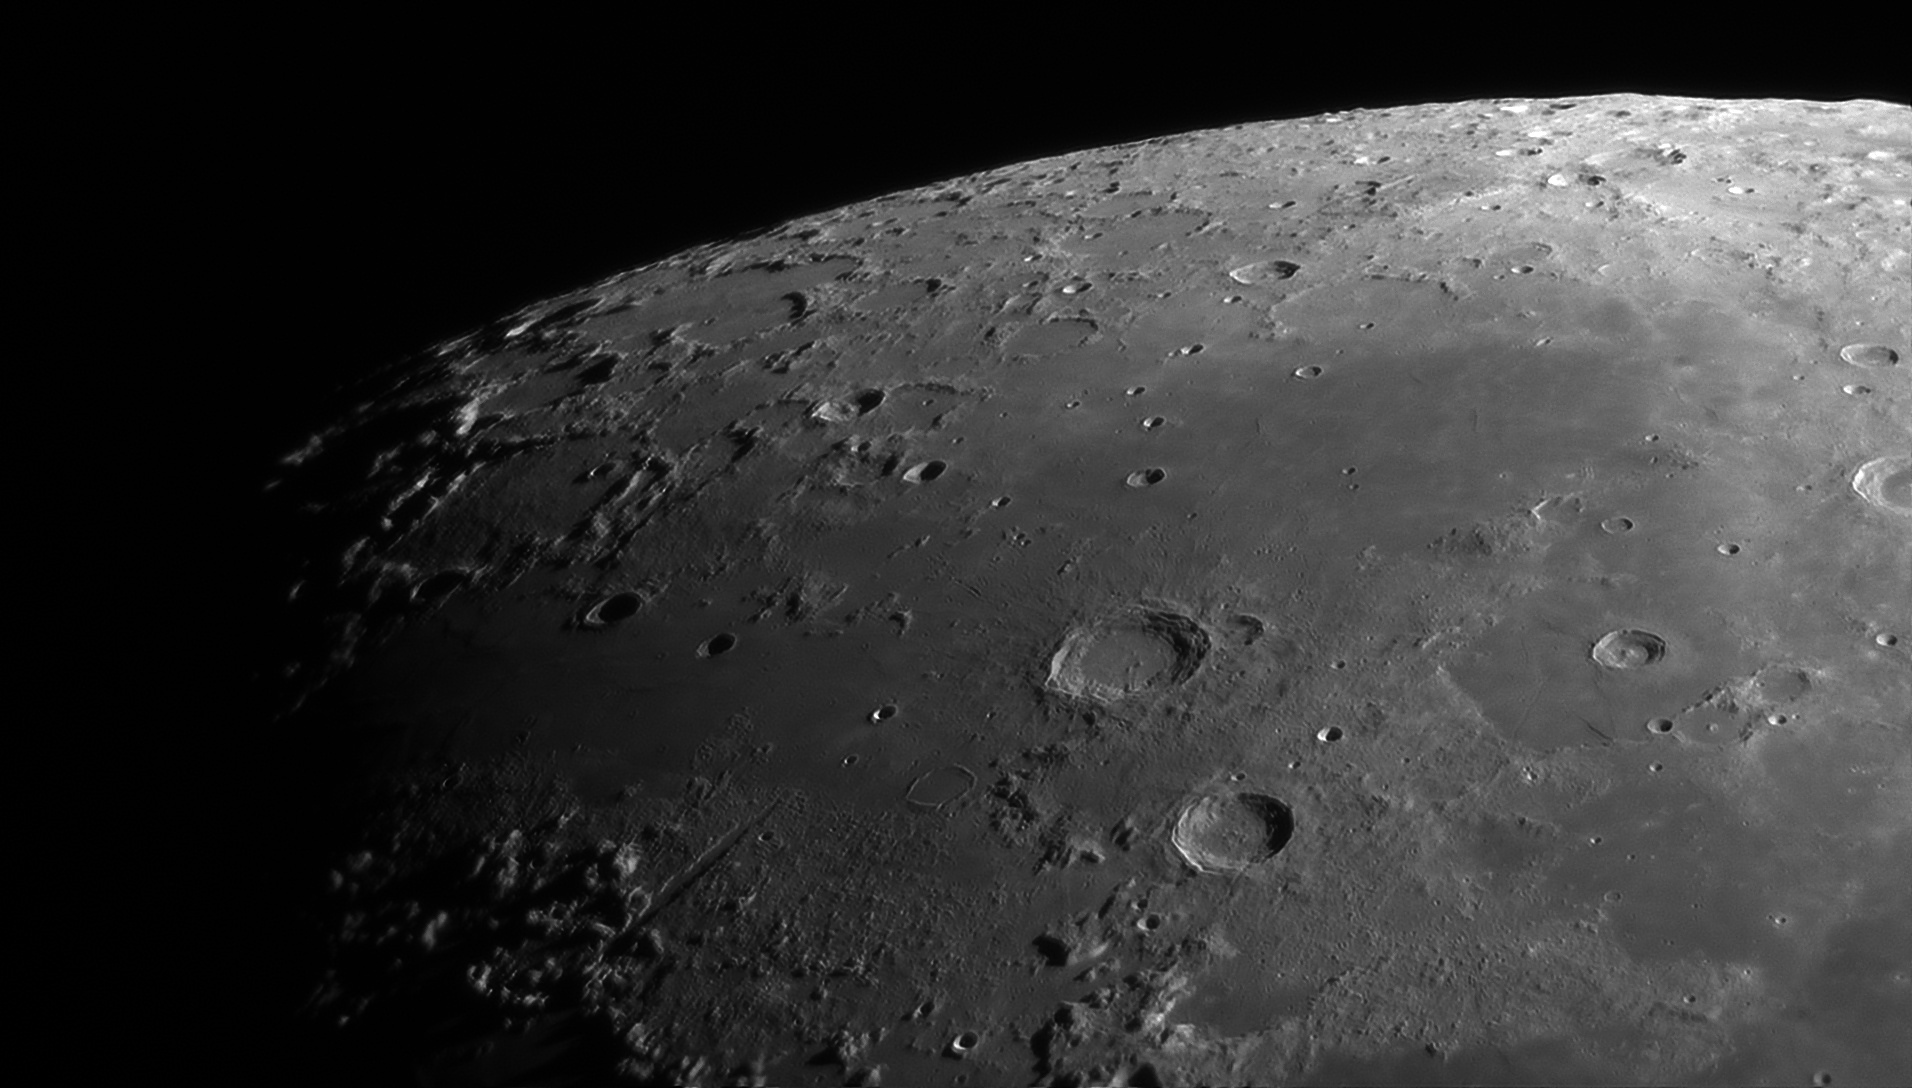 5d0185a422e64_Moon_224957_100619_ZWOASI290MM_Rouge_23A_AS_P25_lapl4_ap701ast.jpg.d48dba5b3875e960676ca397ae589955.jpg